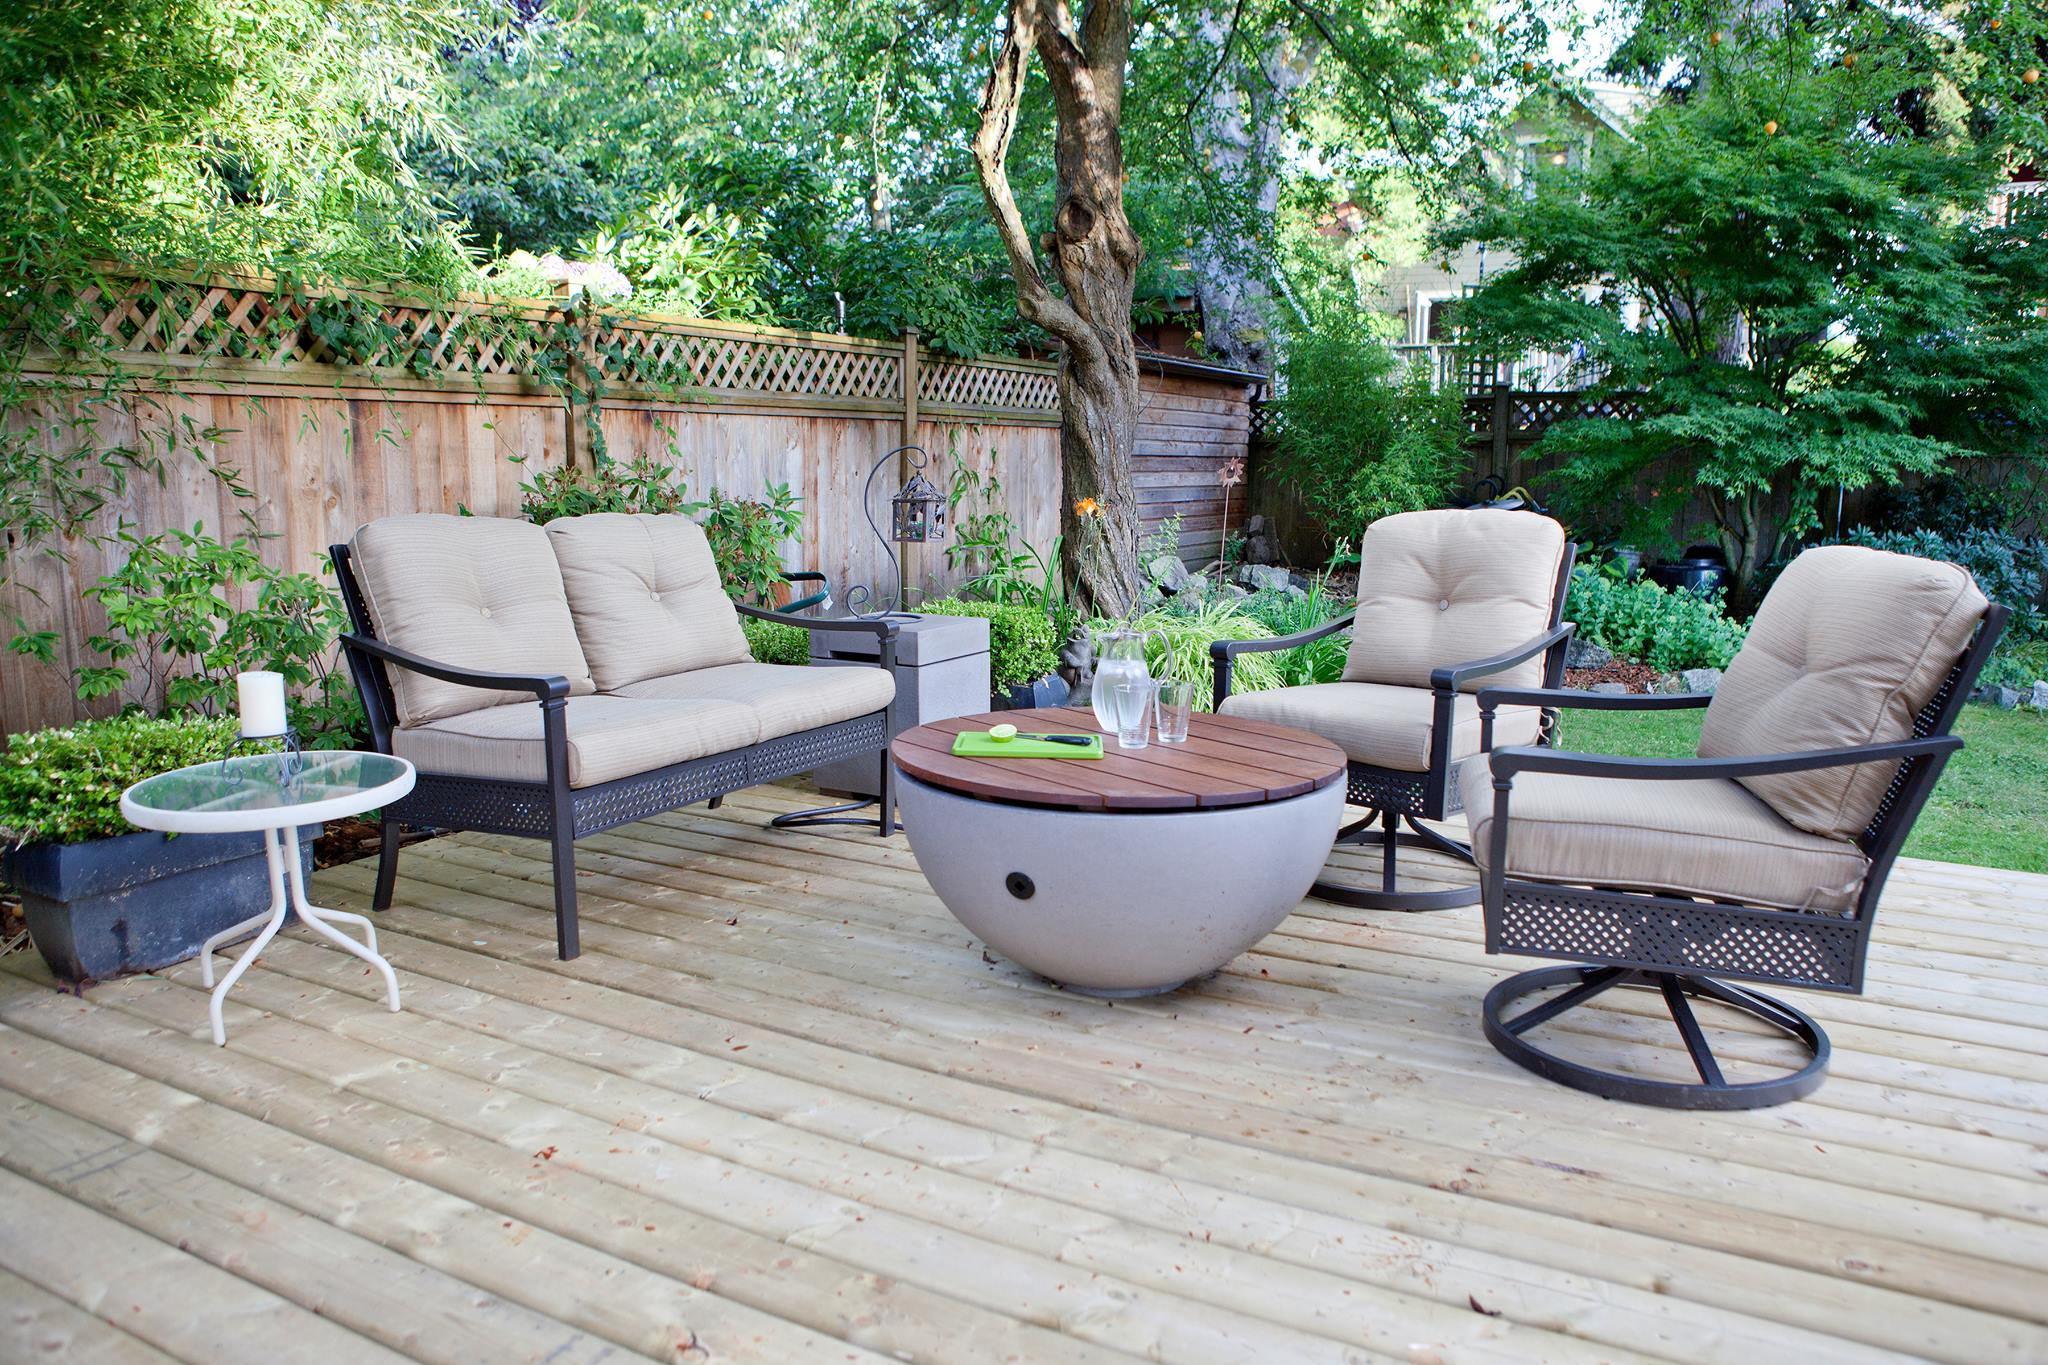 Solus Hemi Firepit with Wood Table Top